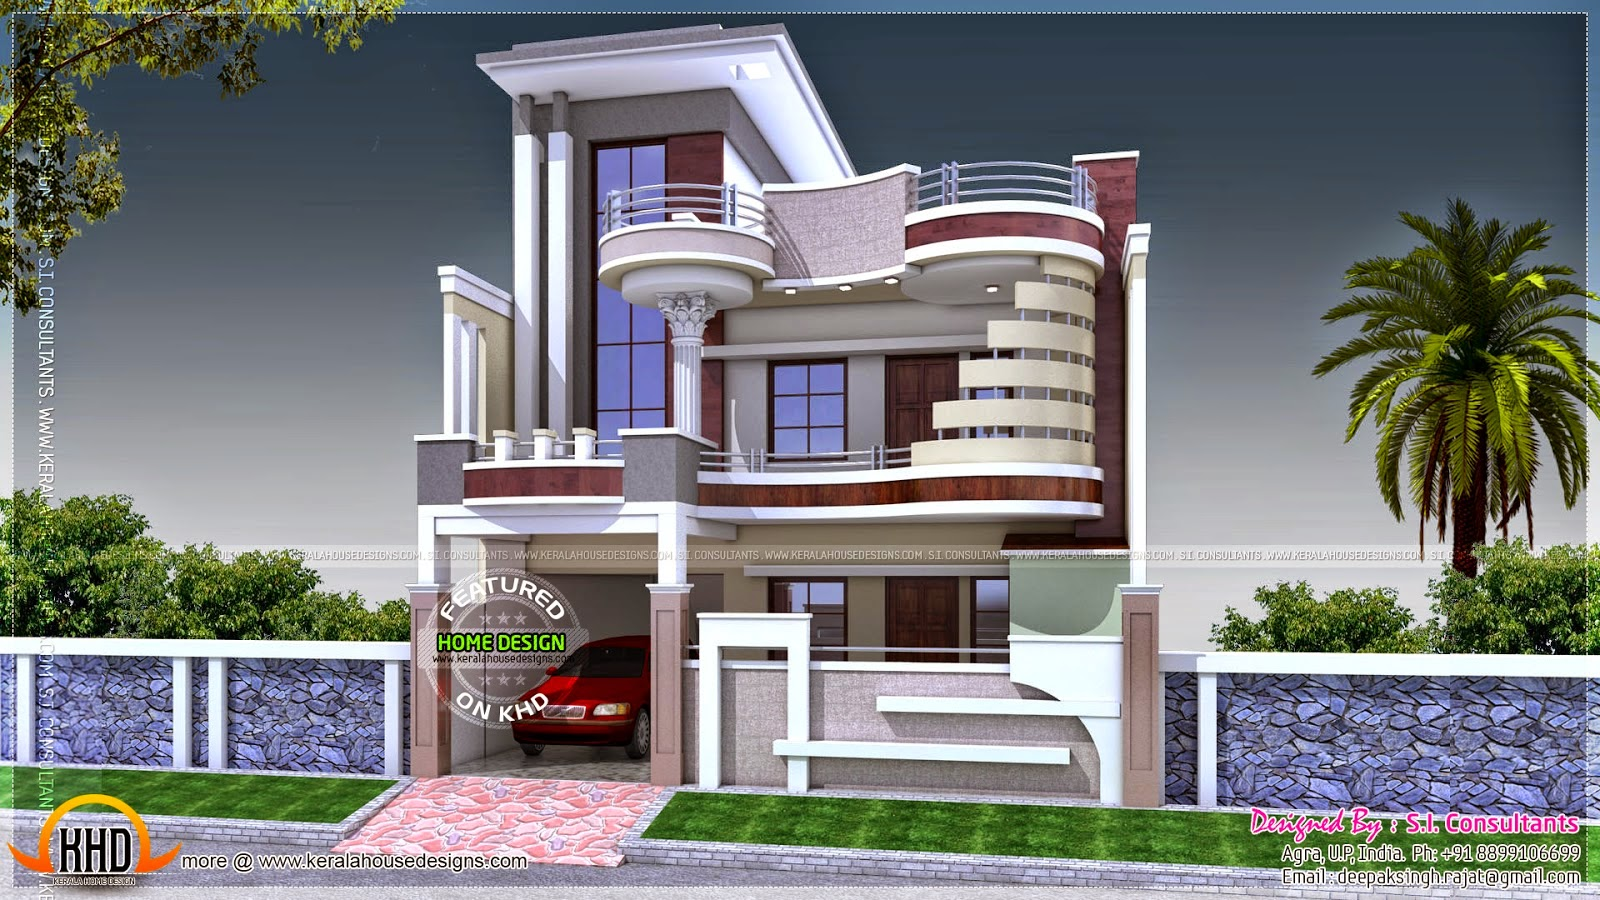 Tropicalizer indian house design Indian home design plans